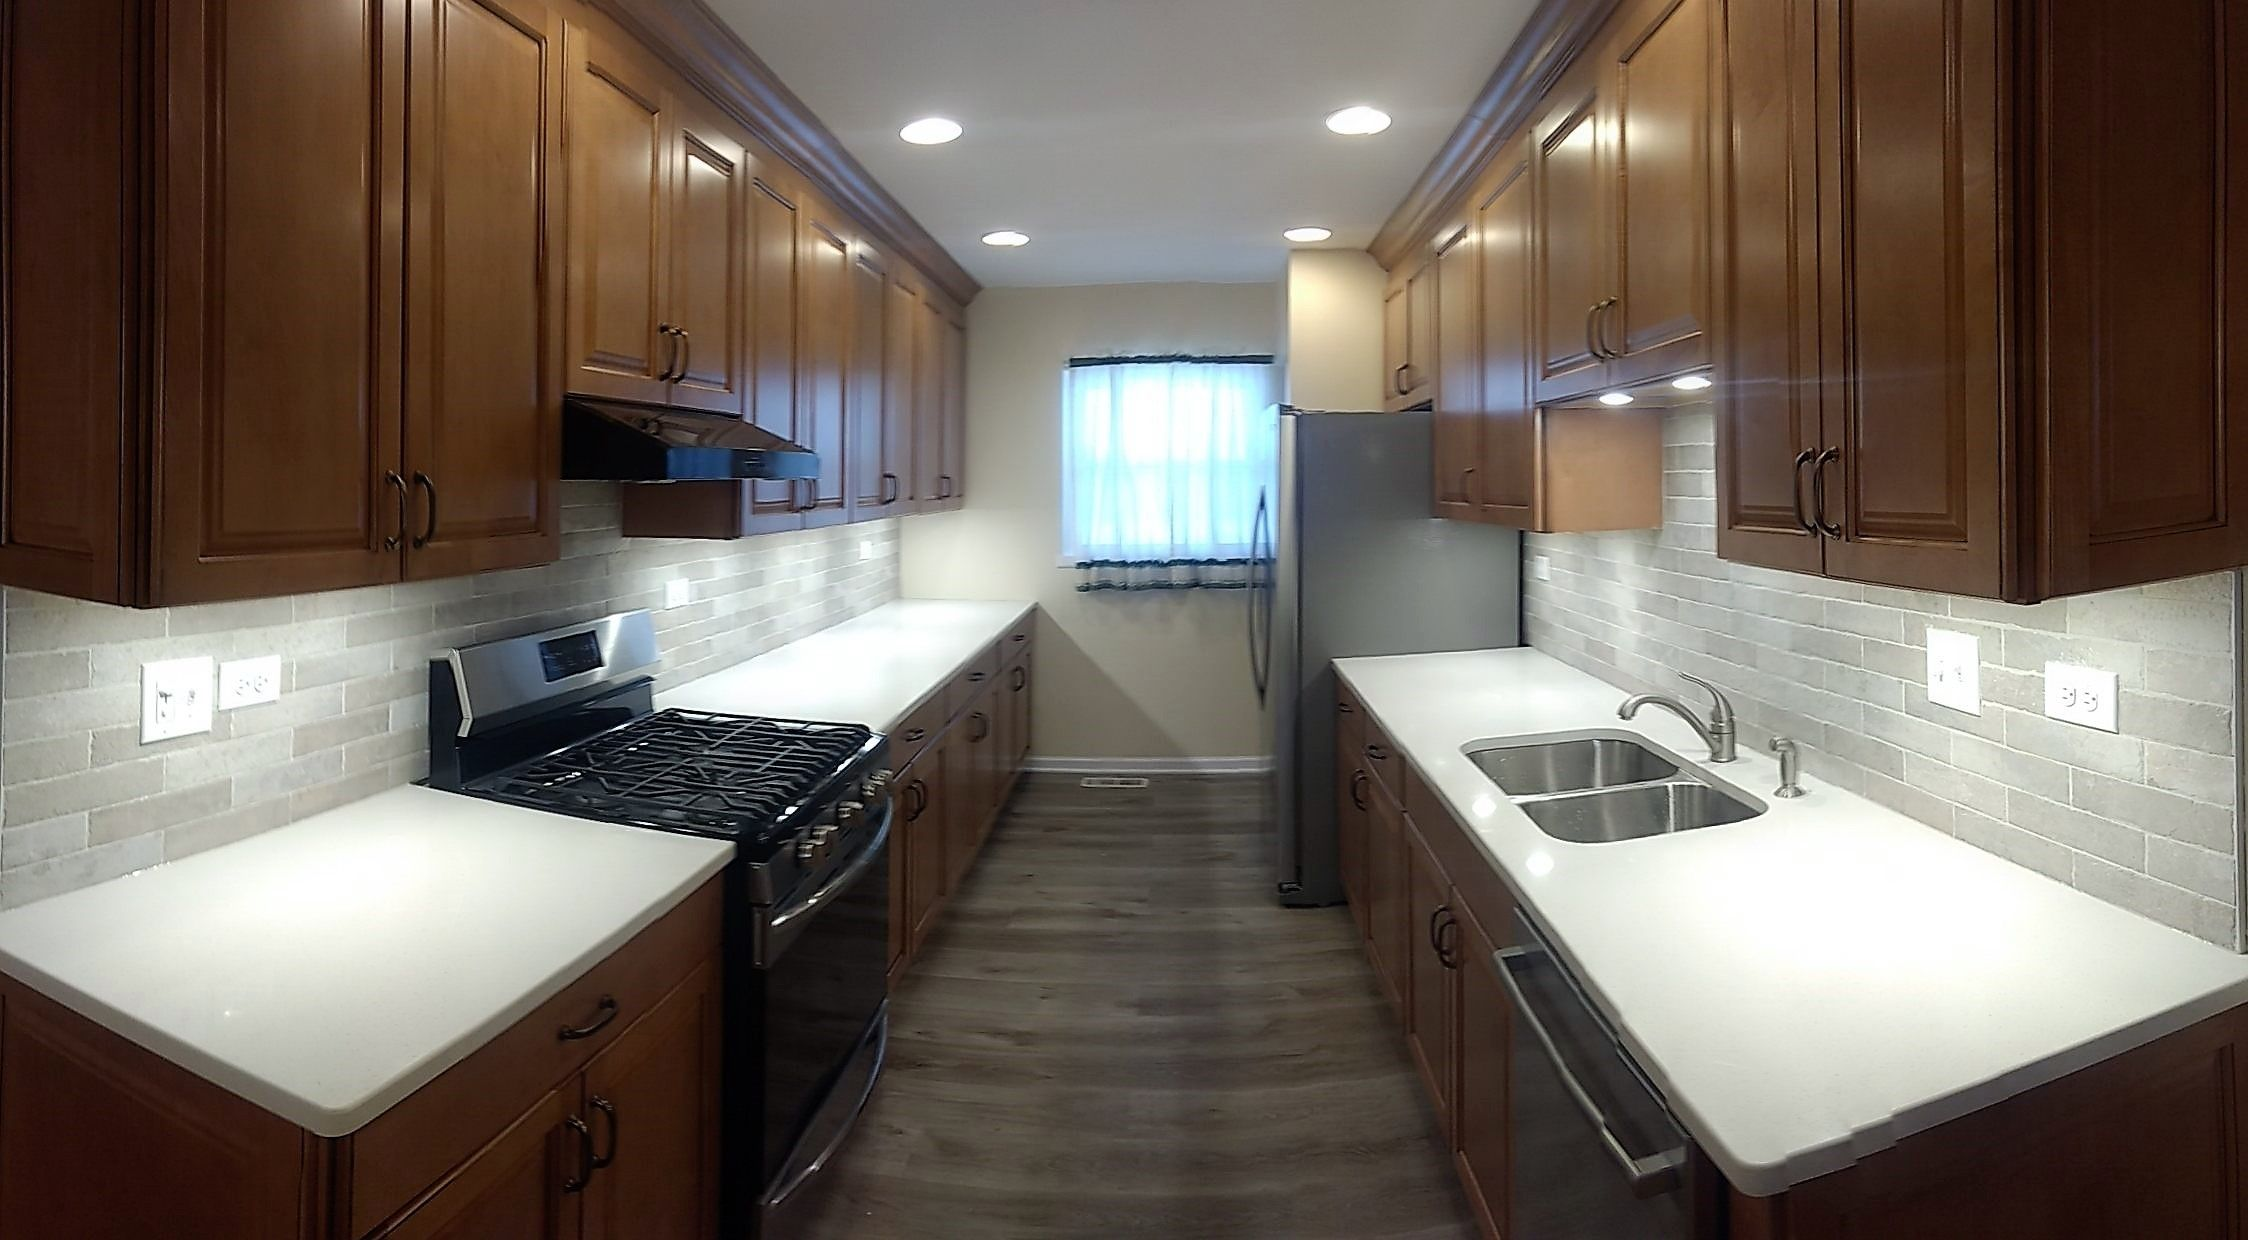 Cherry Cabinets with Frost White Quartz from MSI installed ...